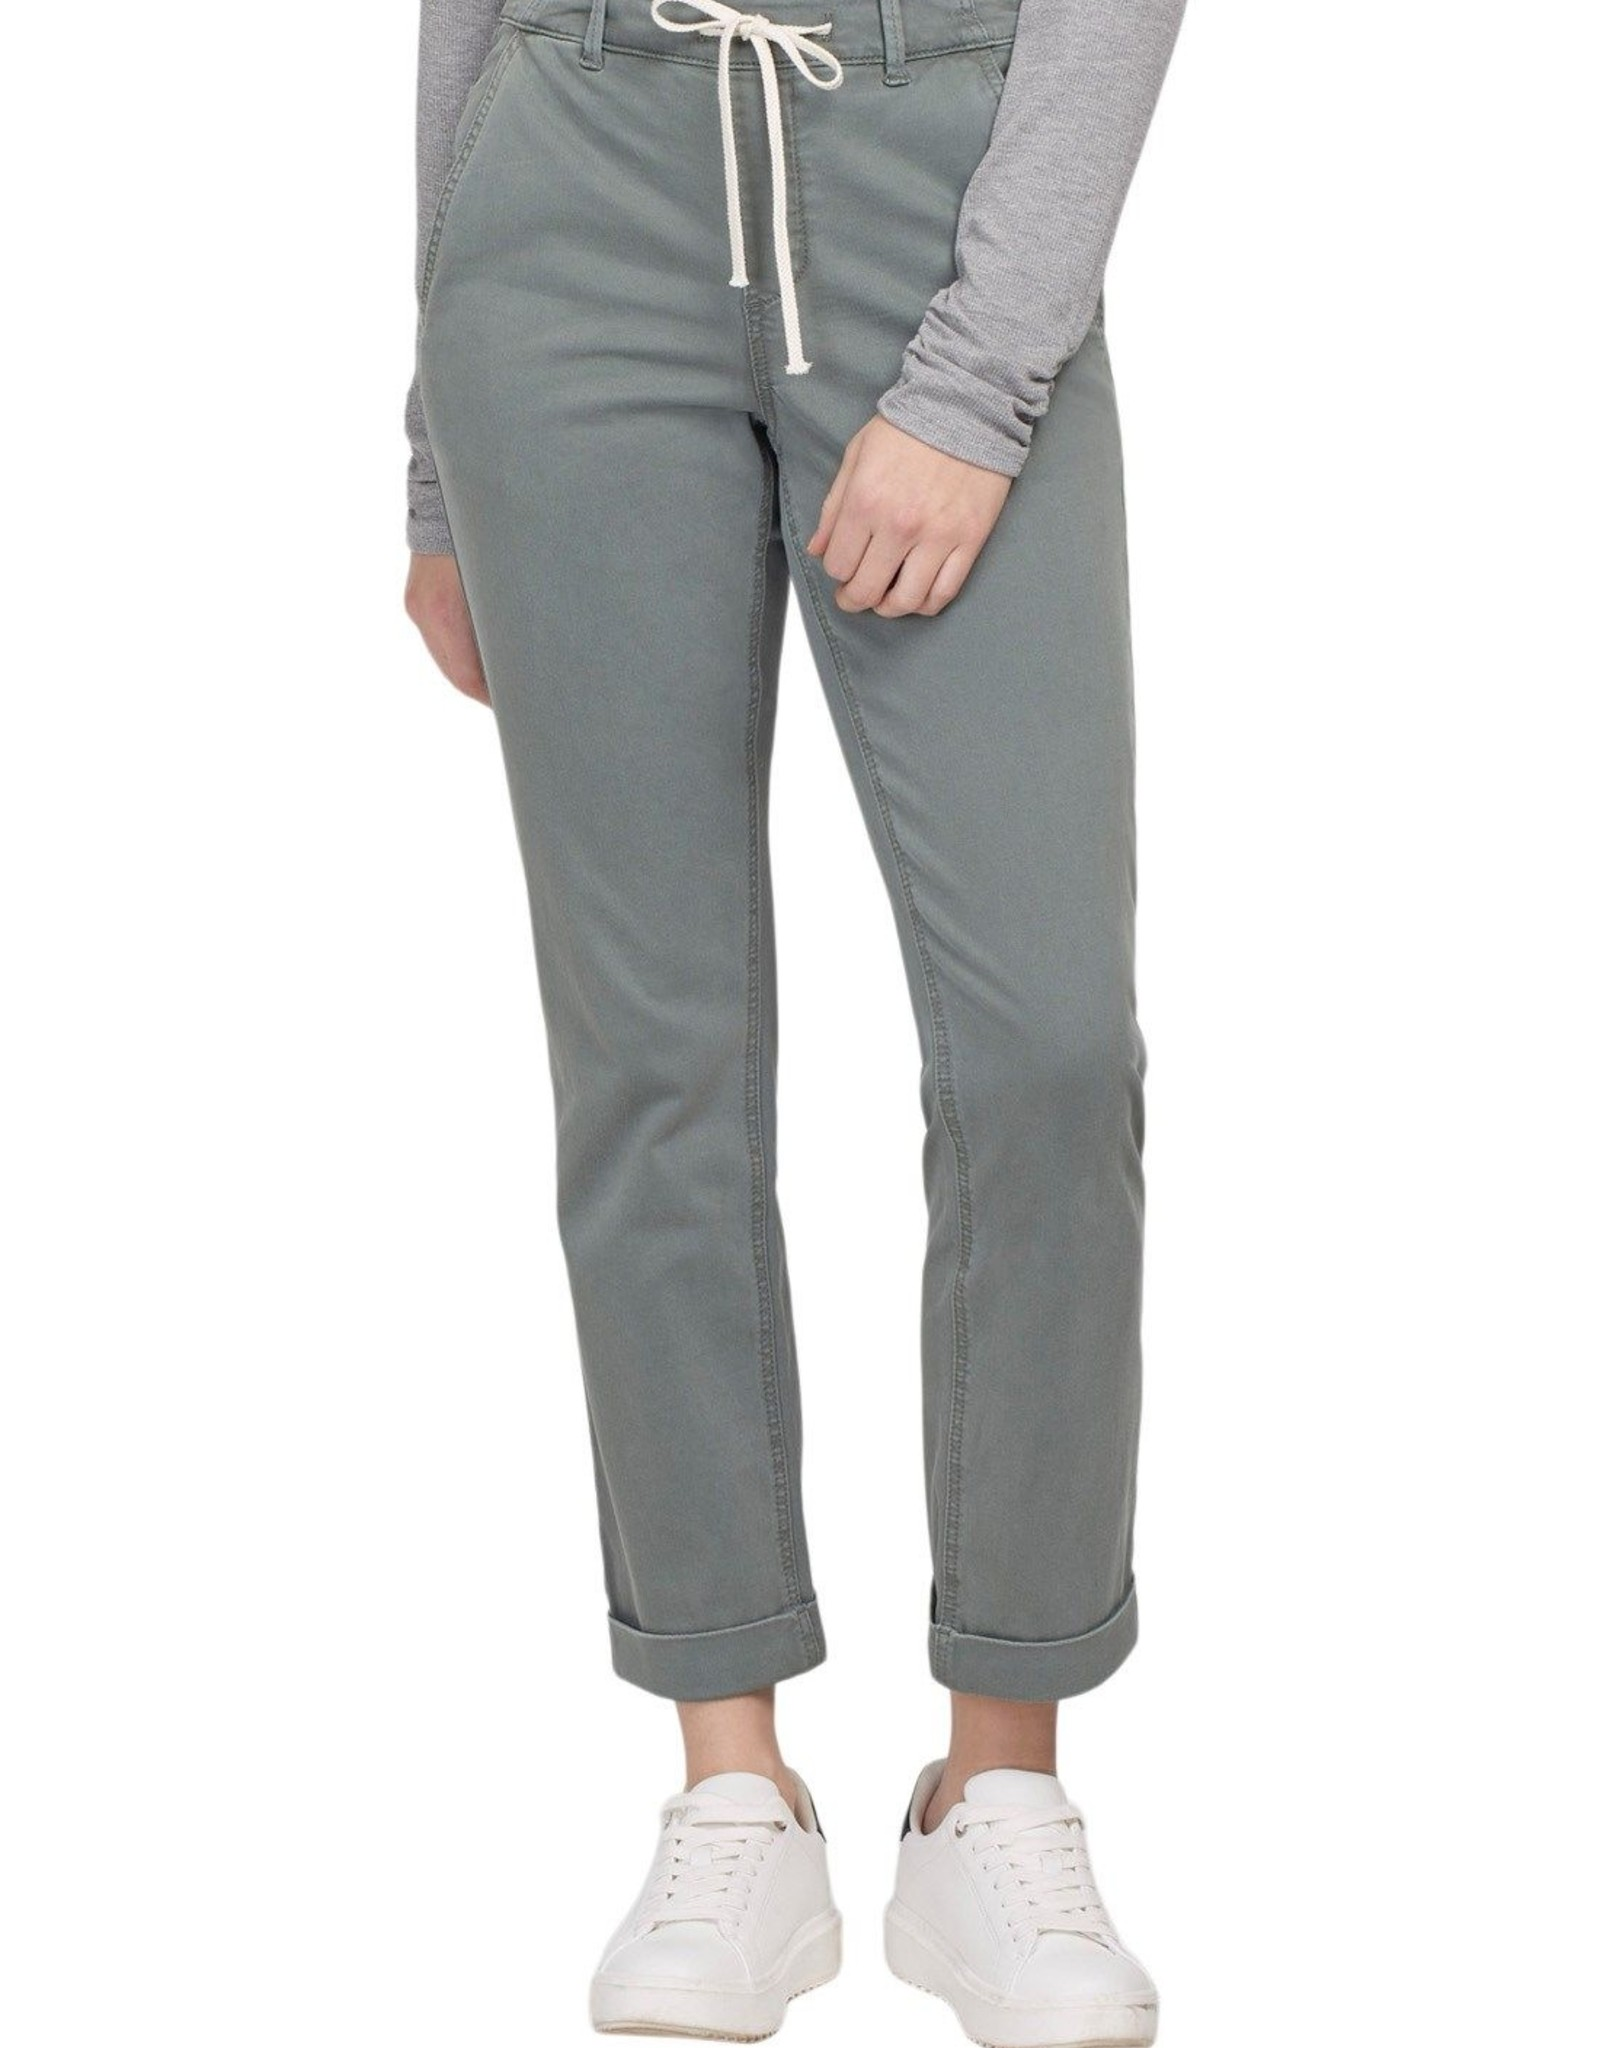 Tribal Tribal 7125O Audrey Jogger Straight Ankle Length with Cuff